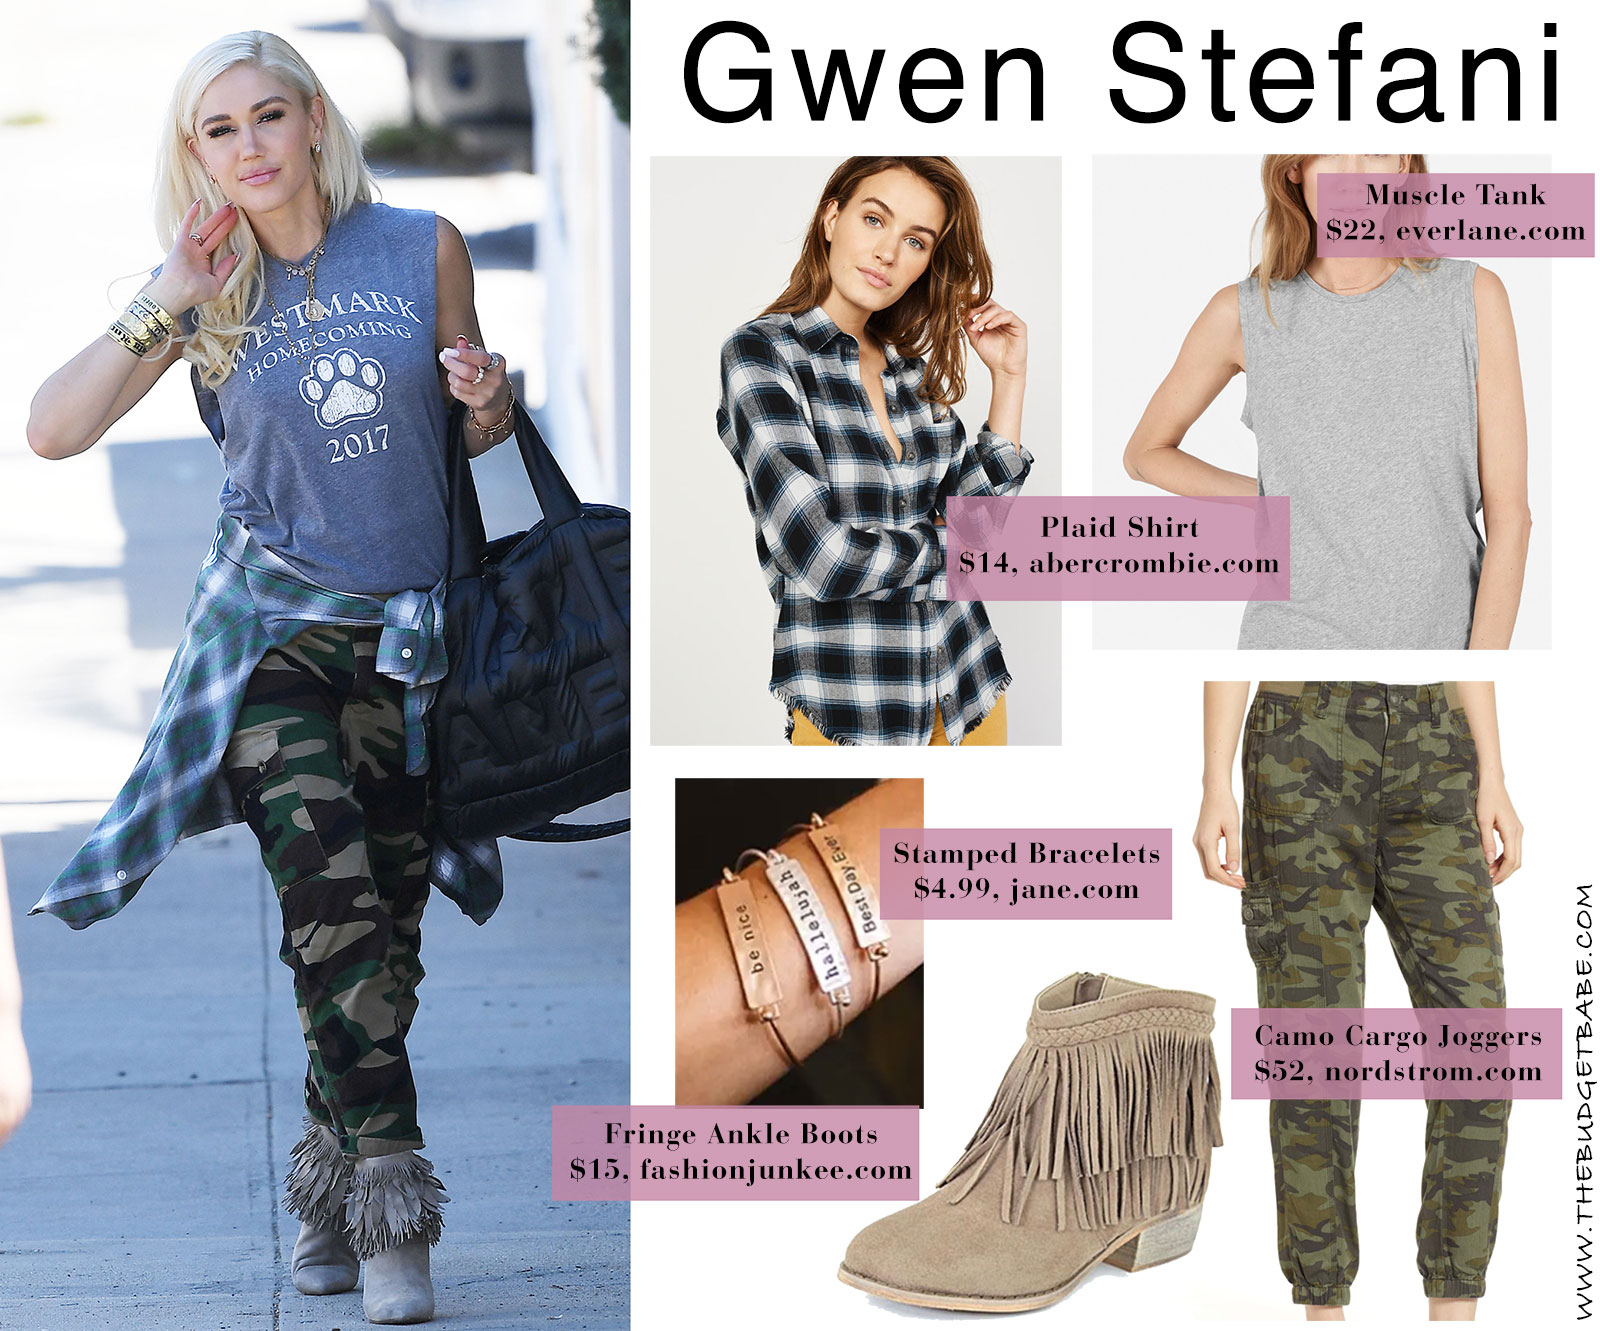 Gwen Stefani camo cargo pants look for less